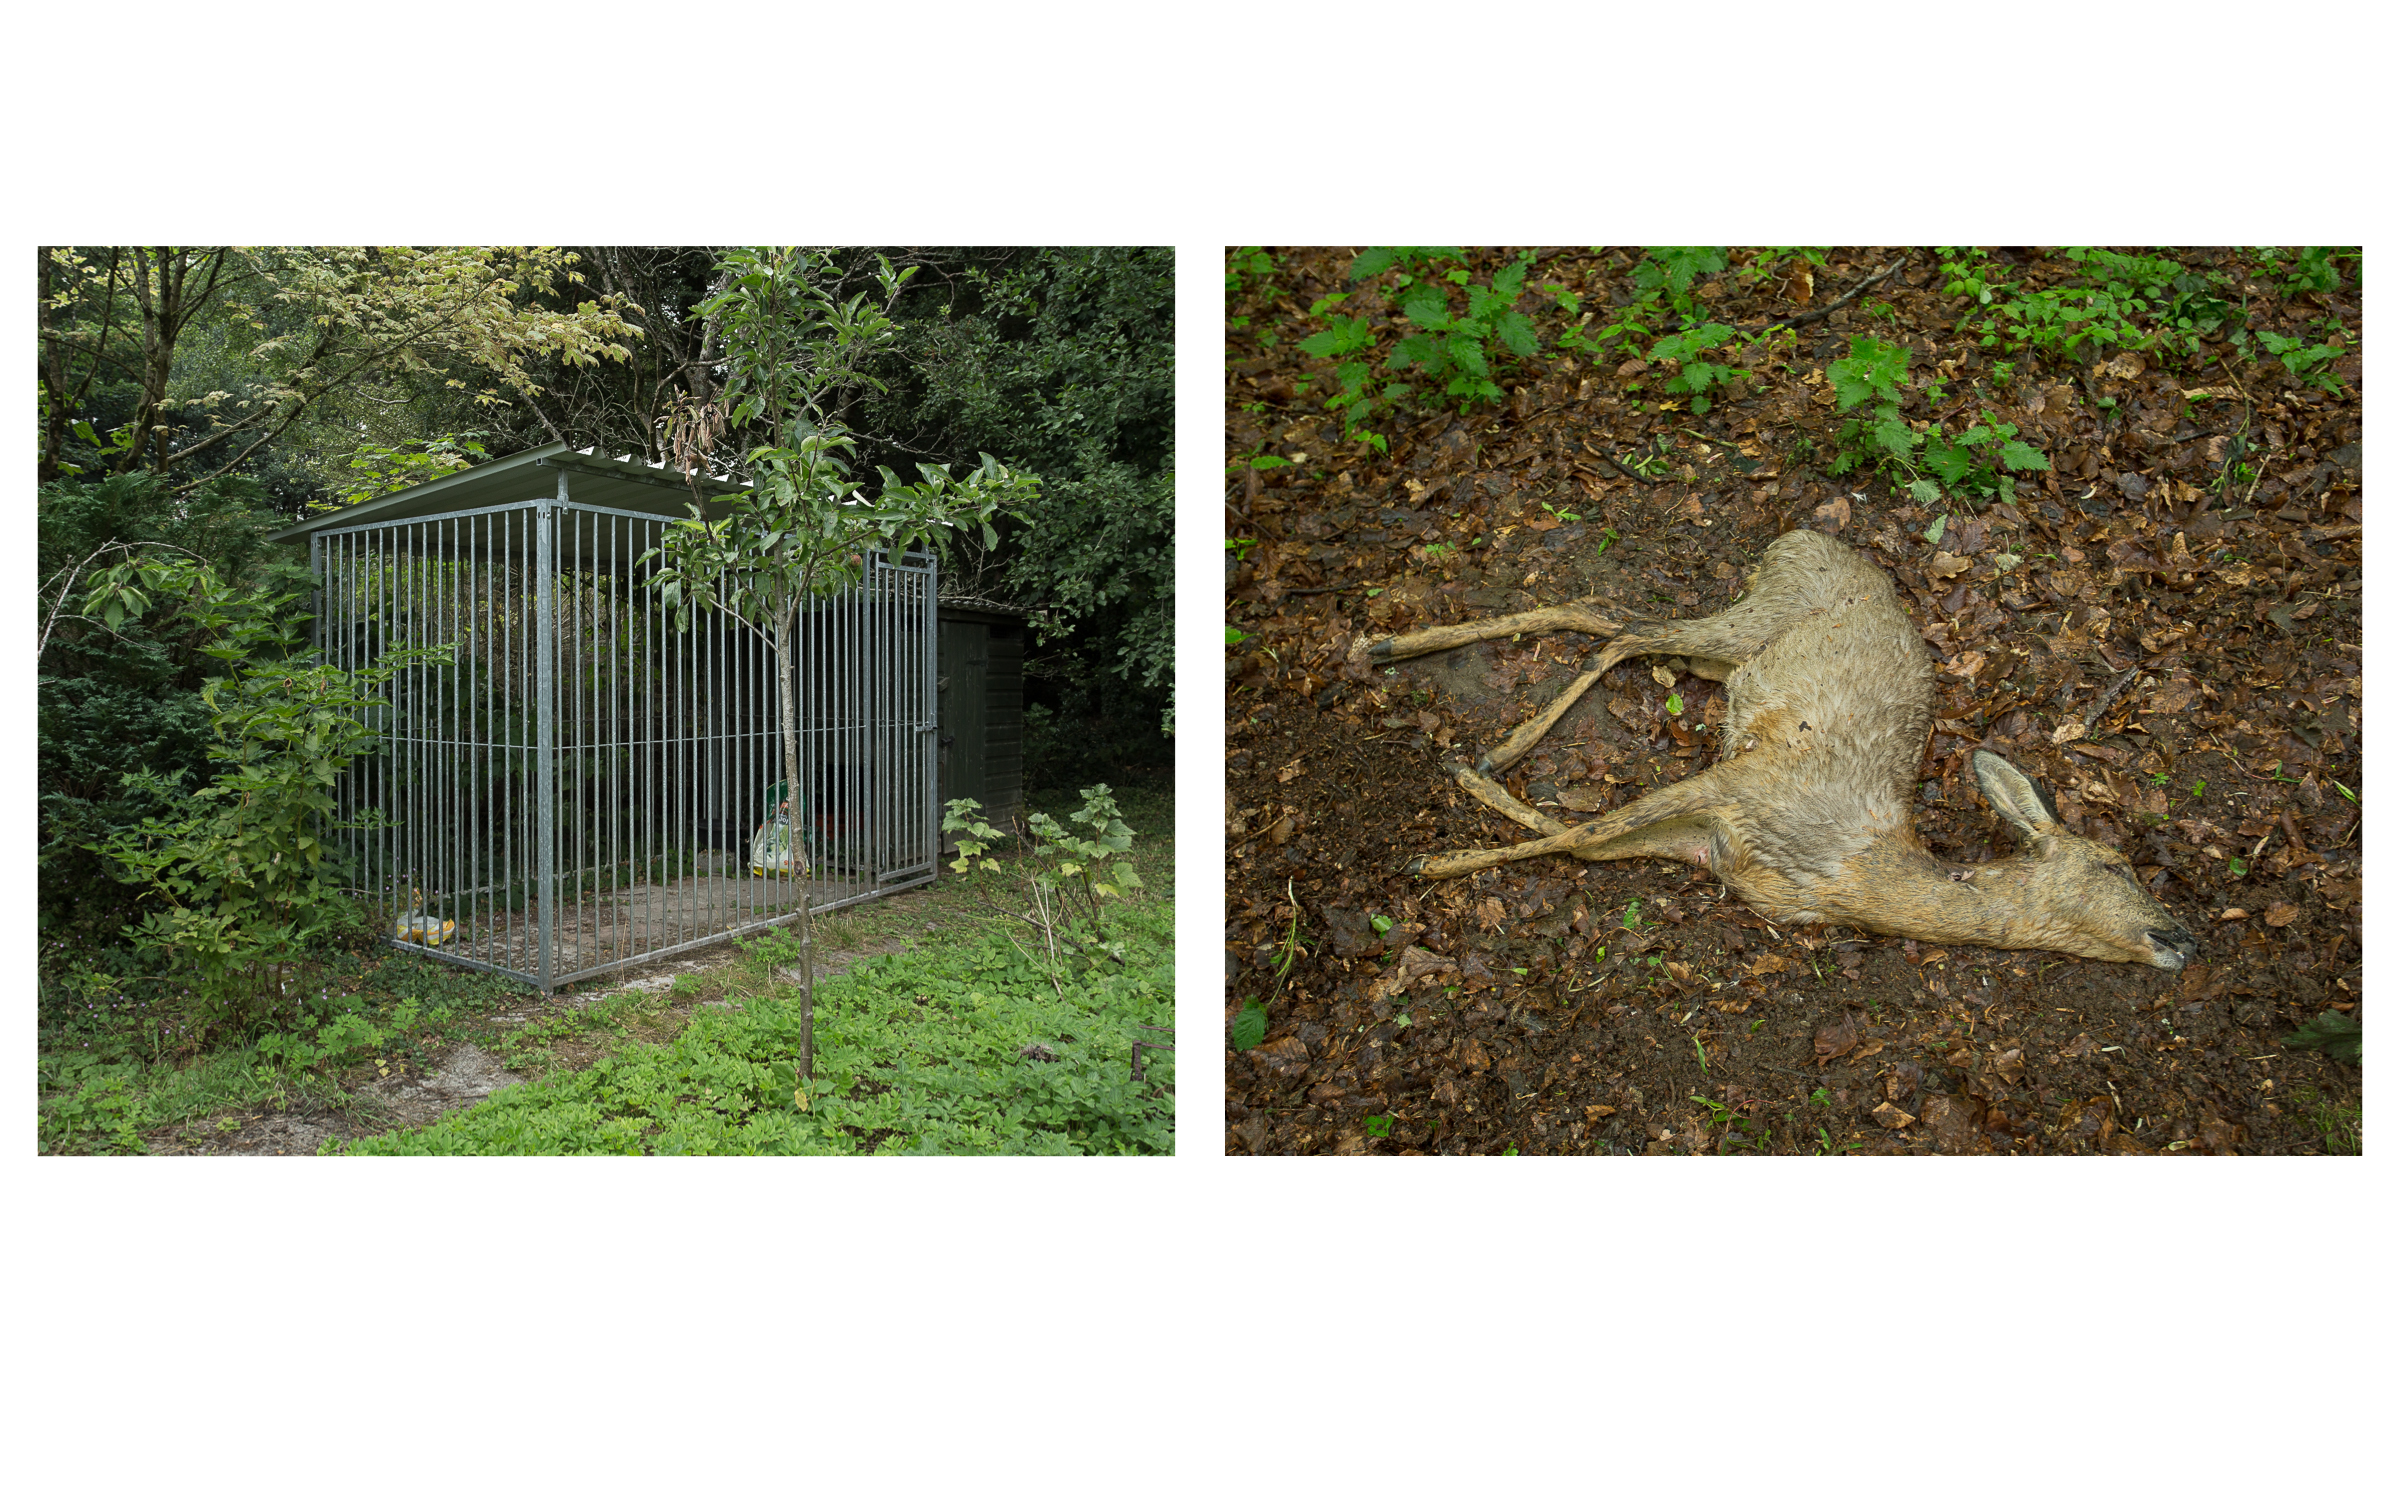 Deer & Cage diptych (colour)